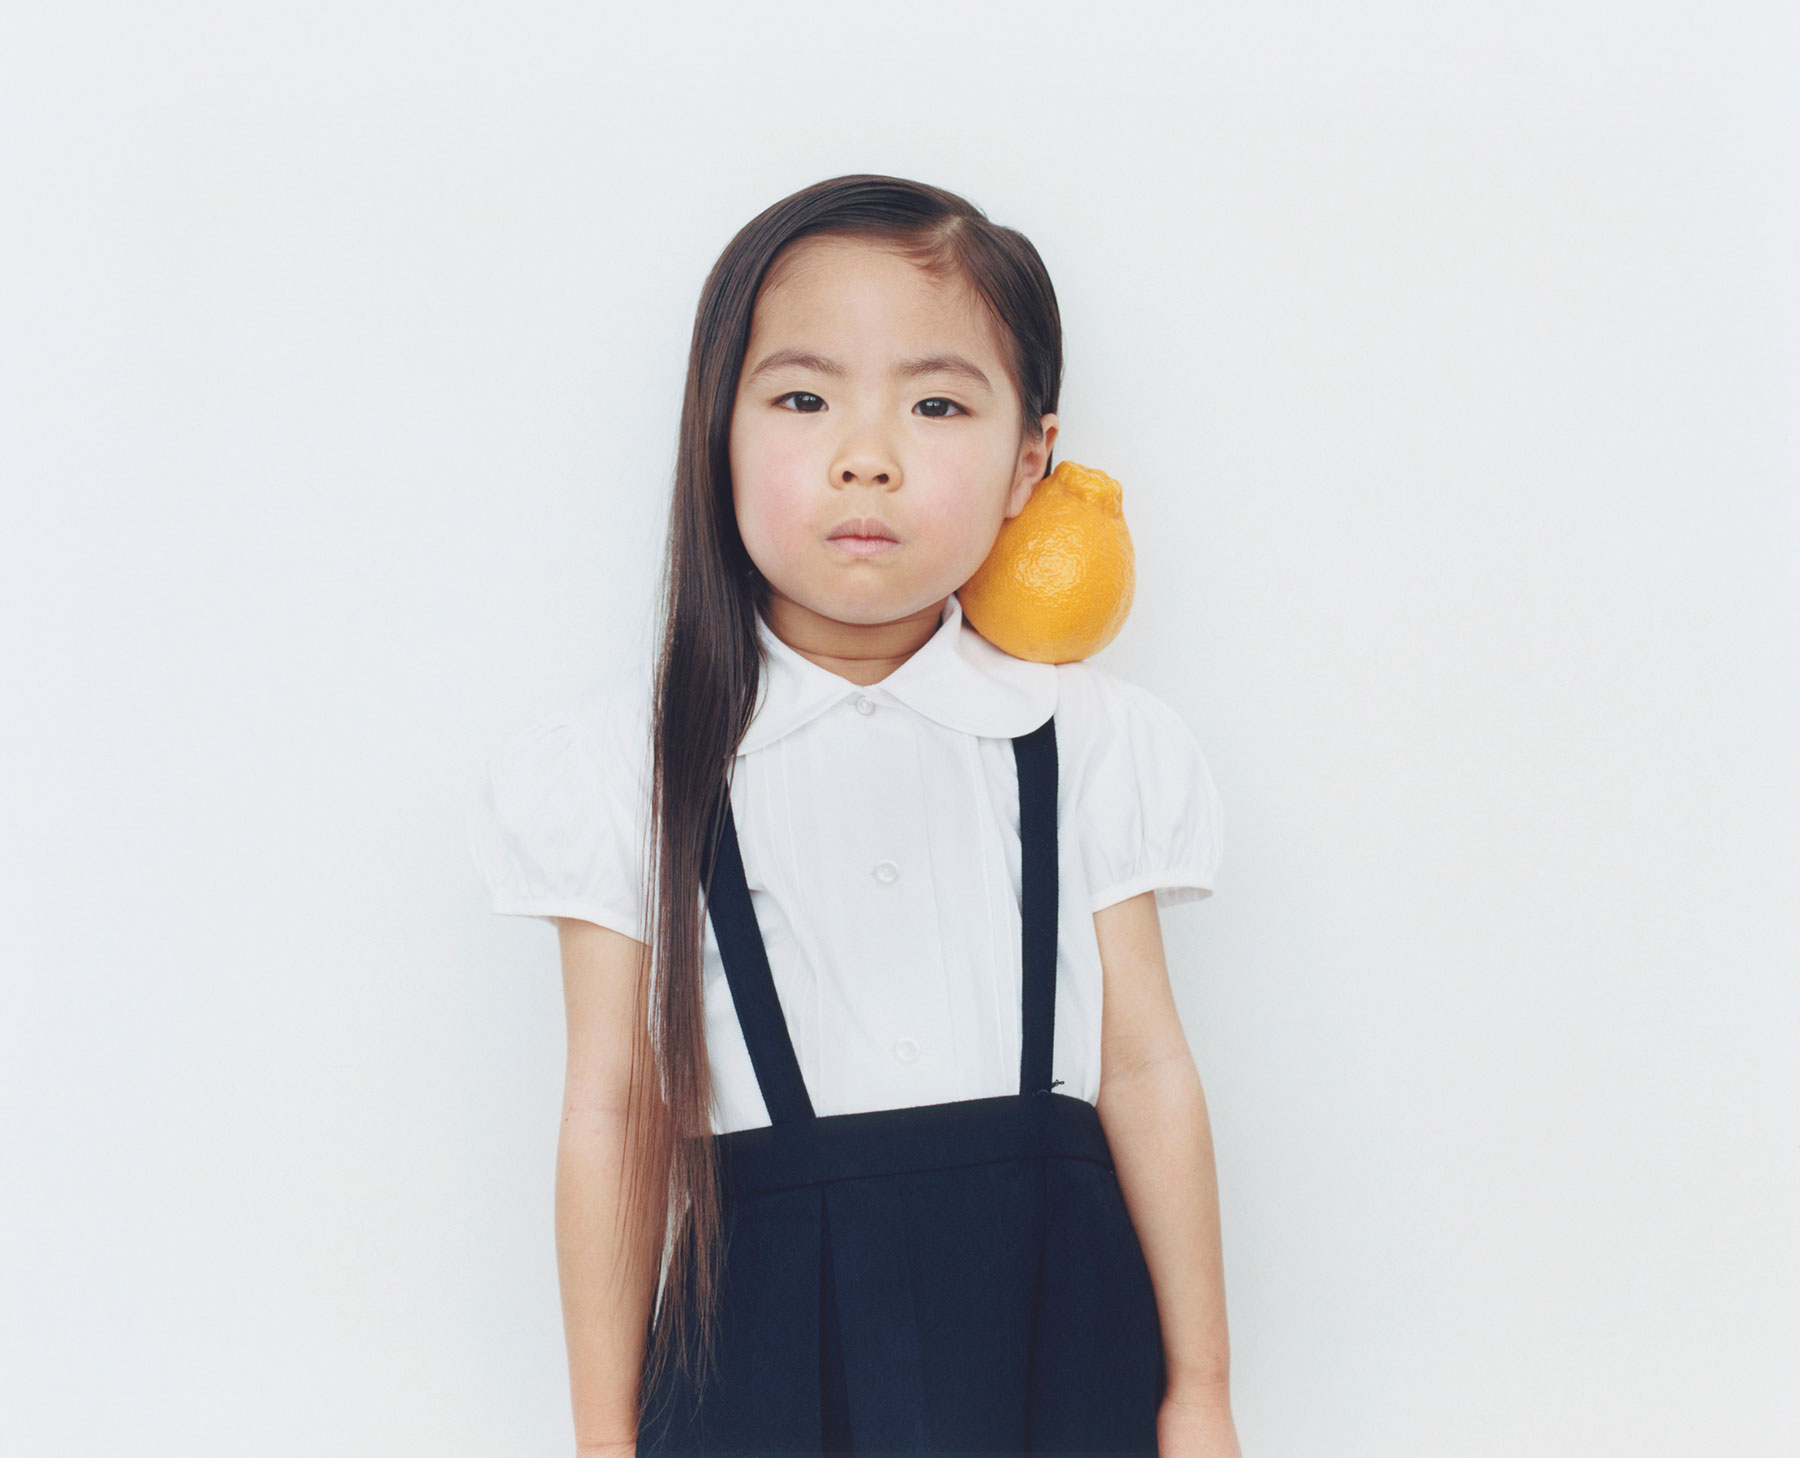 Osamu Yokonami,  1000 Children: Sumo Mandarin No. 2 , 2010-2013  Digital pigment print, 895 x 1105 mm (approx. 35 x 43.5 in), edition of 5; 146 x 168 mm (approx. 5.75 x 6.6 in), edition of 10   Inquire